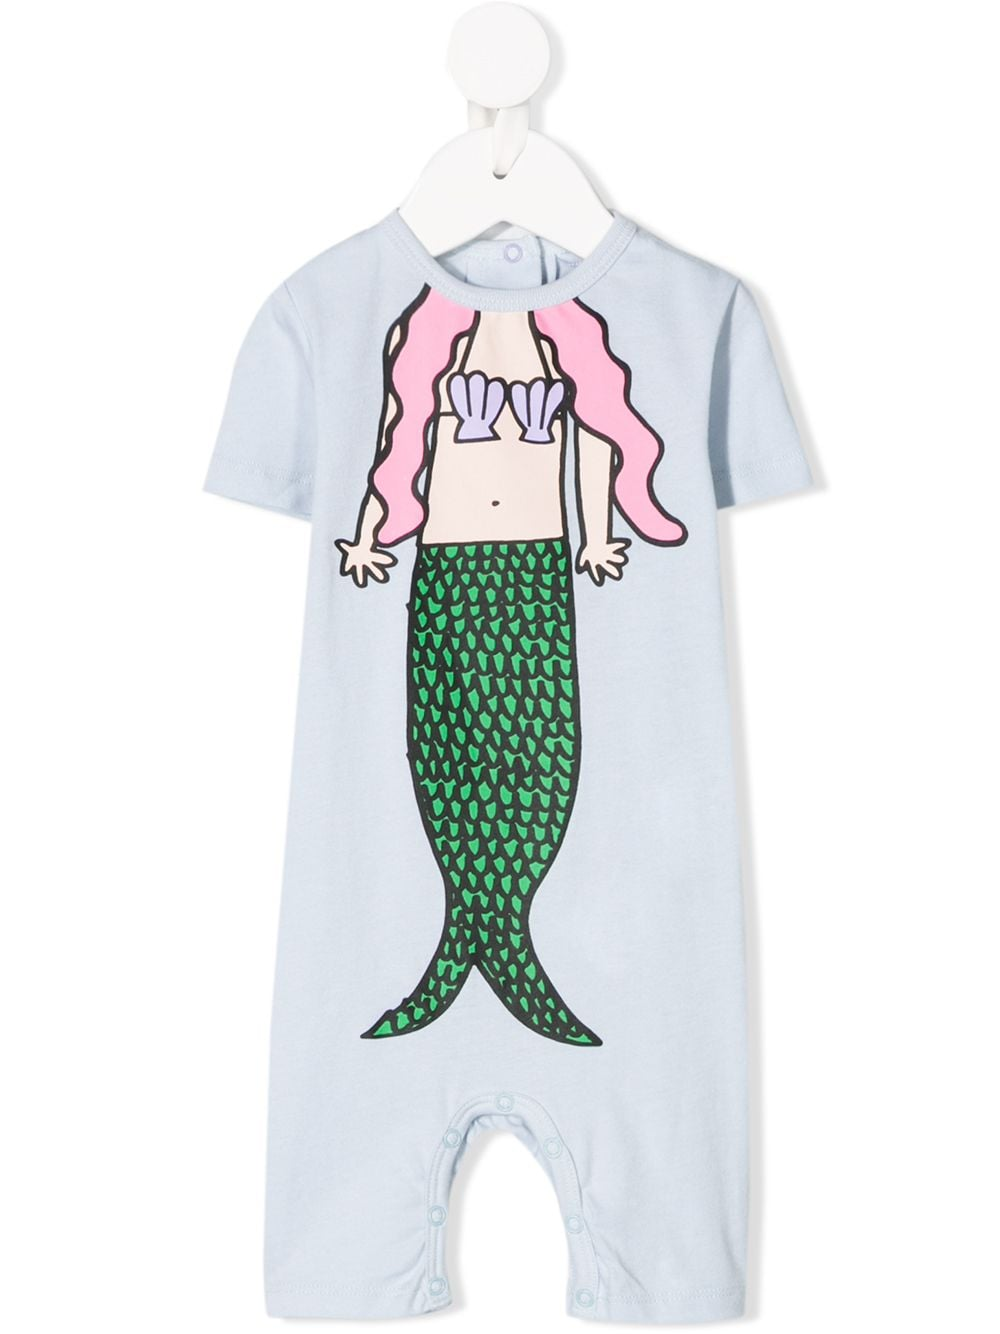 Mermaid Print SMC Baby Jumpsuit